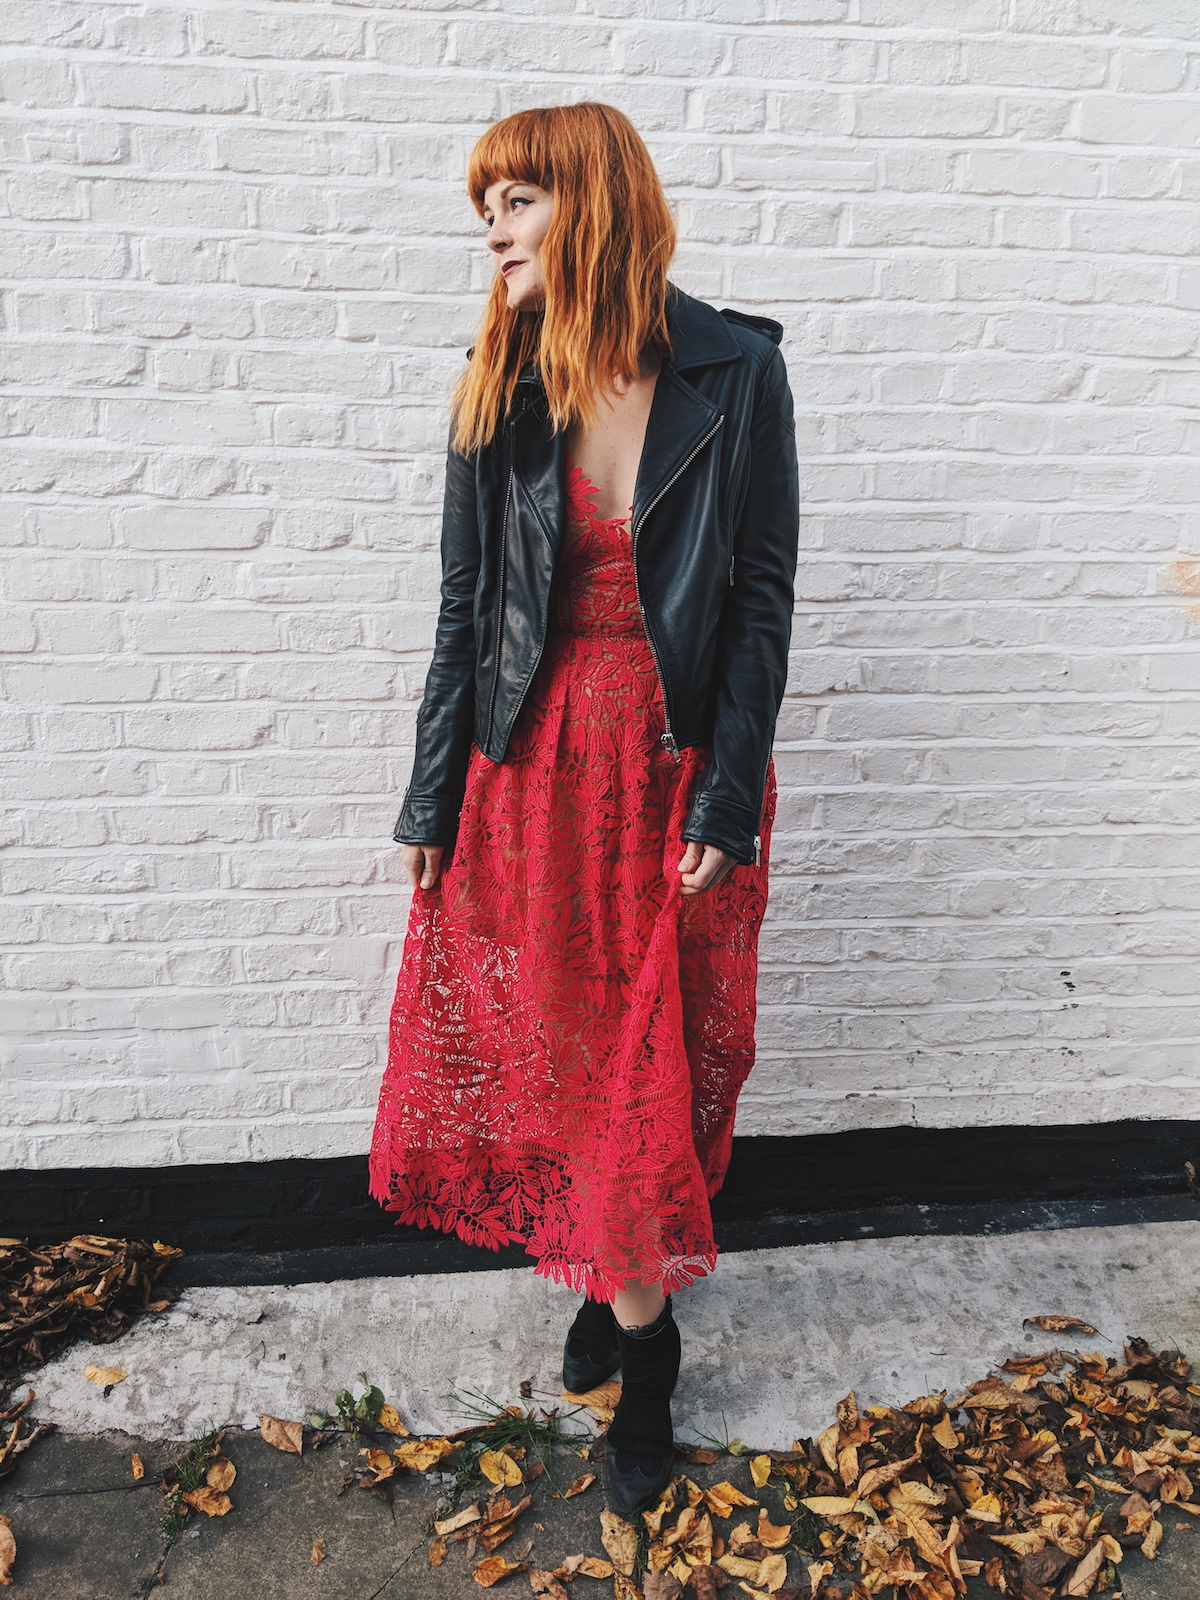 Teaming a formal dress with a biker jacket and ankle boots instantly dresses an outfit down for an effortless look